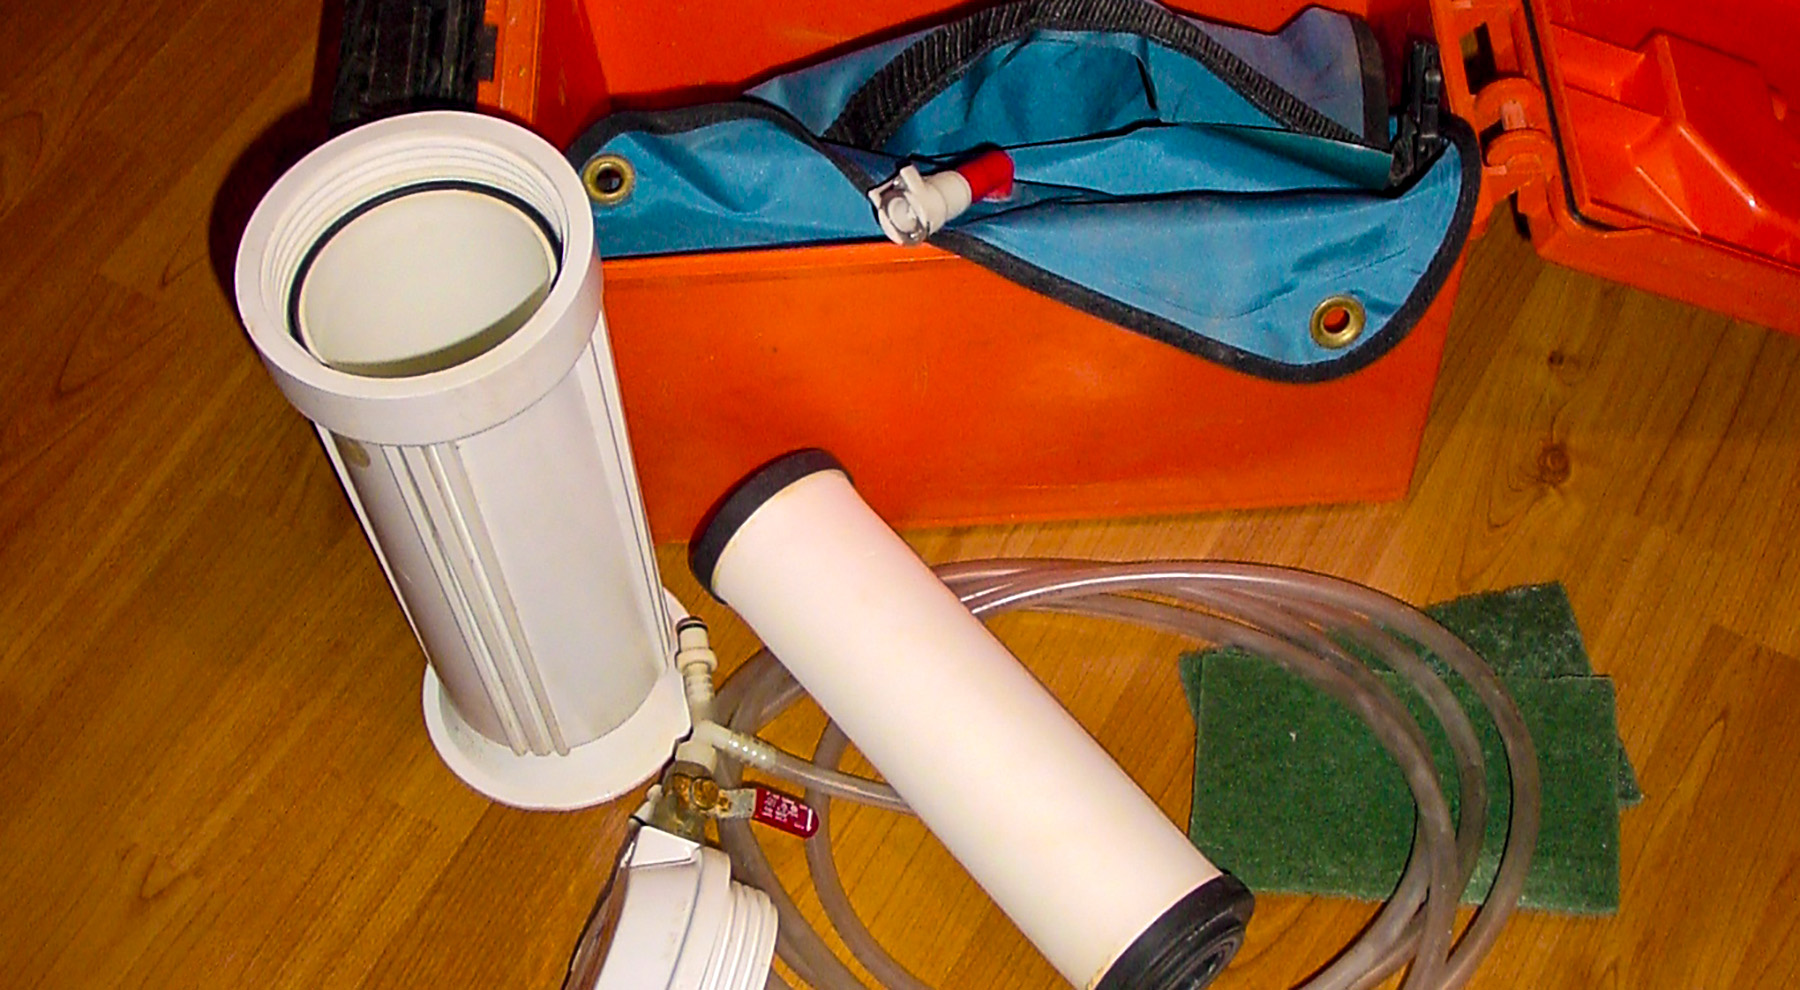 RAFT bulk water filtration system for remote expeditions